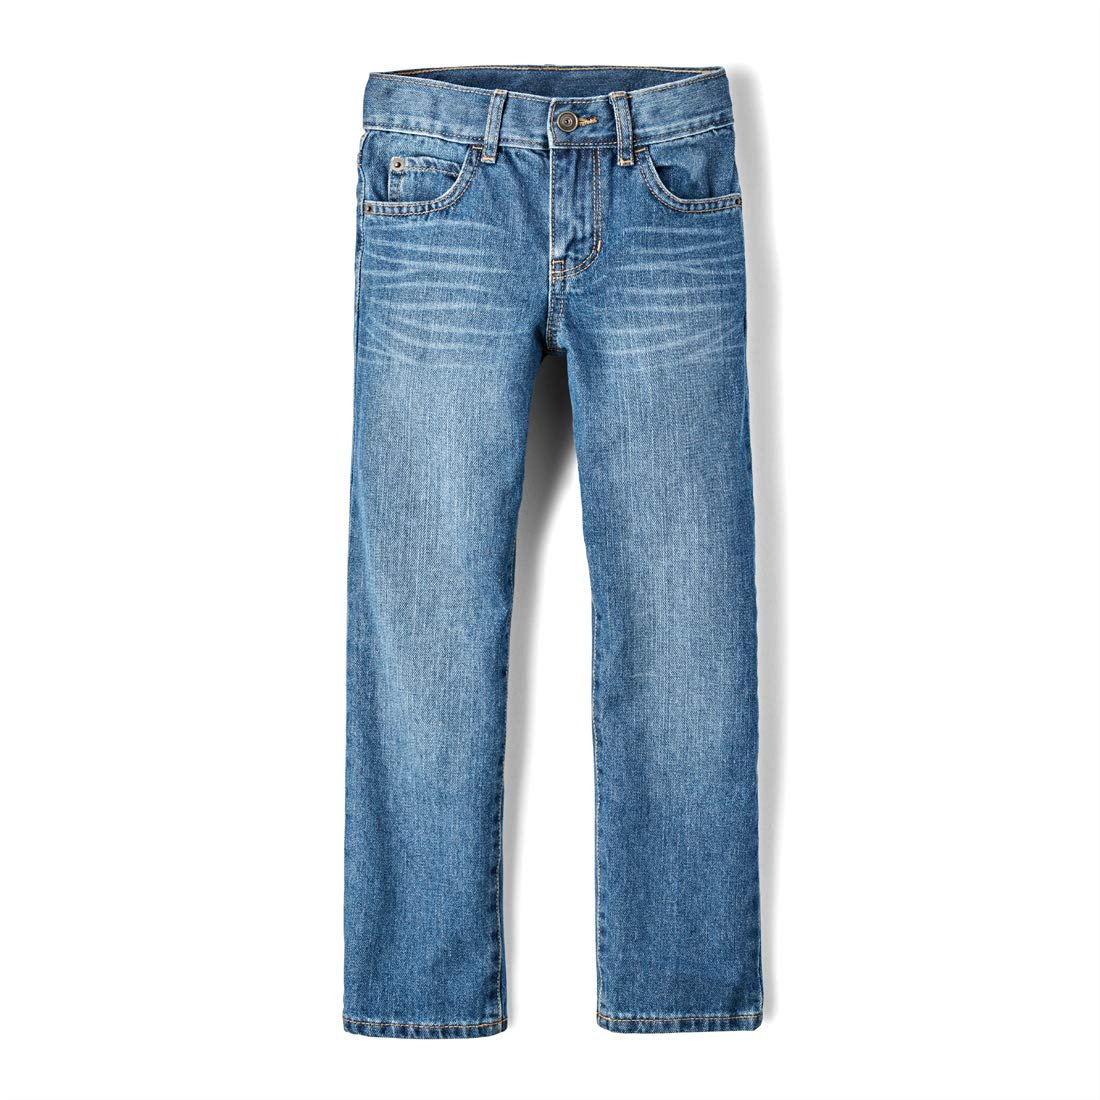 bacd3ca14 Best Rated in Boys' Jeans & Helpful Customer Reviews - Amazon.com